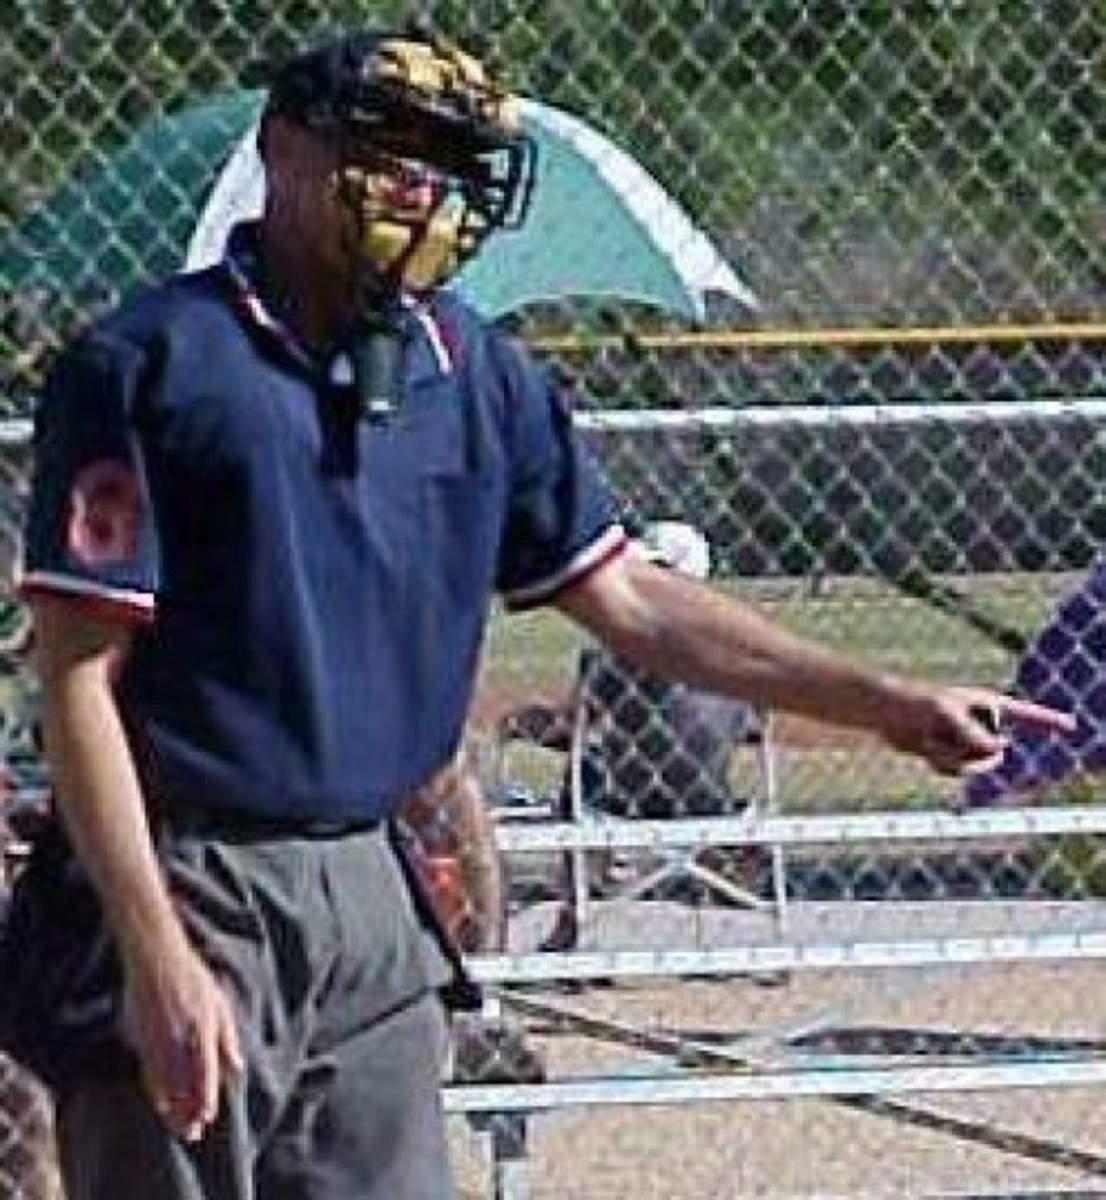 I've used indentations in the dirt, marks on the ball and chalk lines as proof. Don't call what LOOKS to be the call. Only call what you can see. If you didn't or can't see it, call time and talk in private.